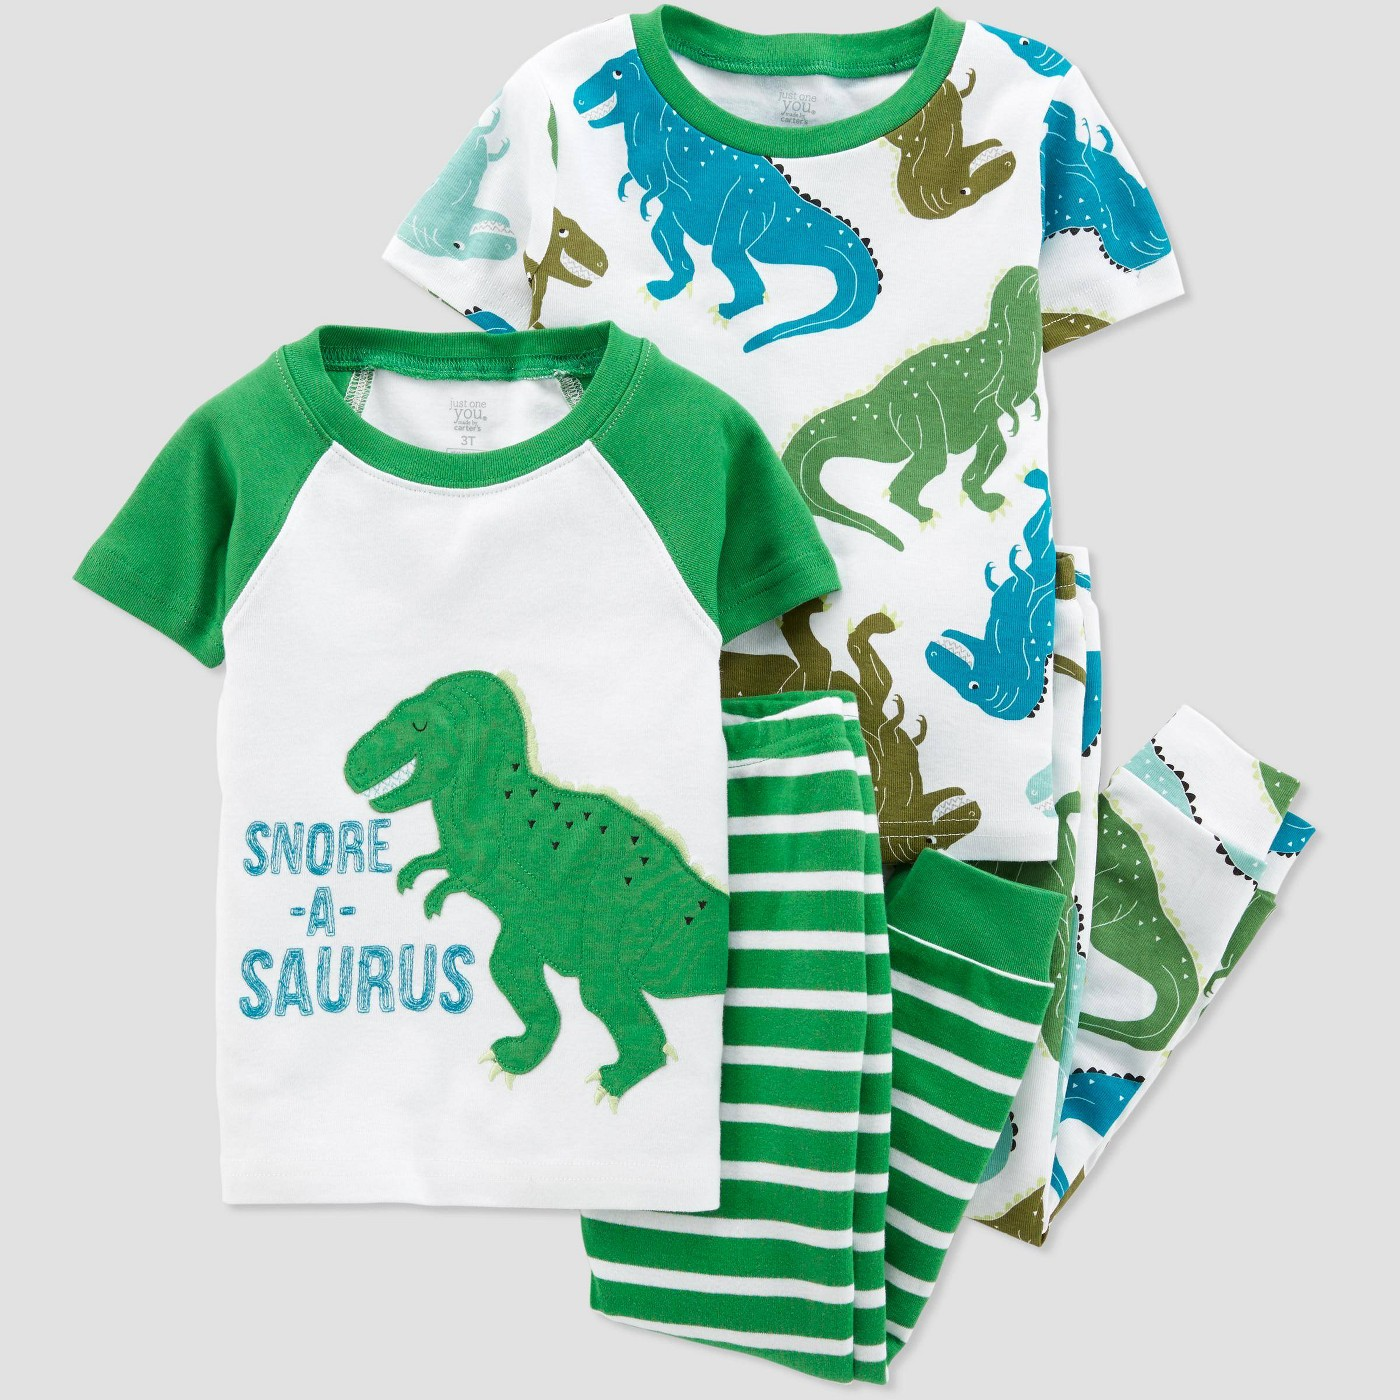 Toddler Boys' 4pc Dino Pajama Set - Just One You® made by carter's Green/White - image 1 of 1